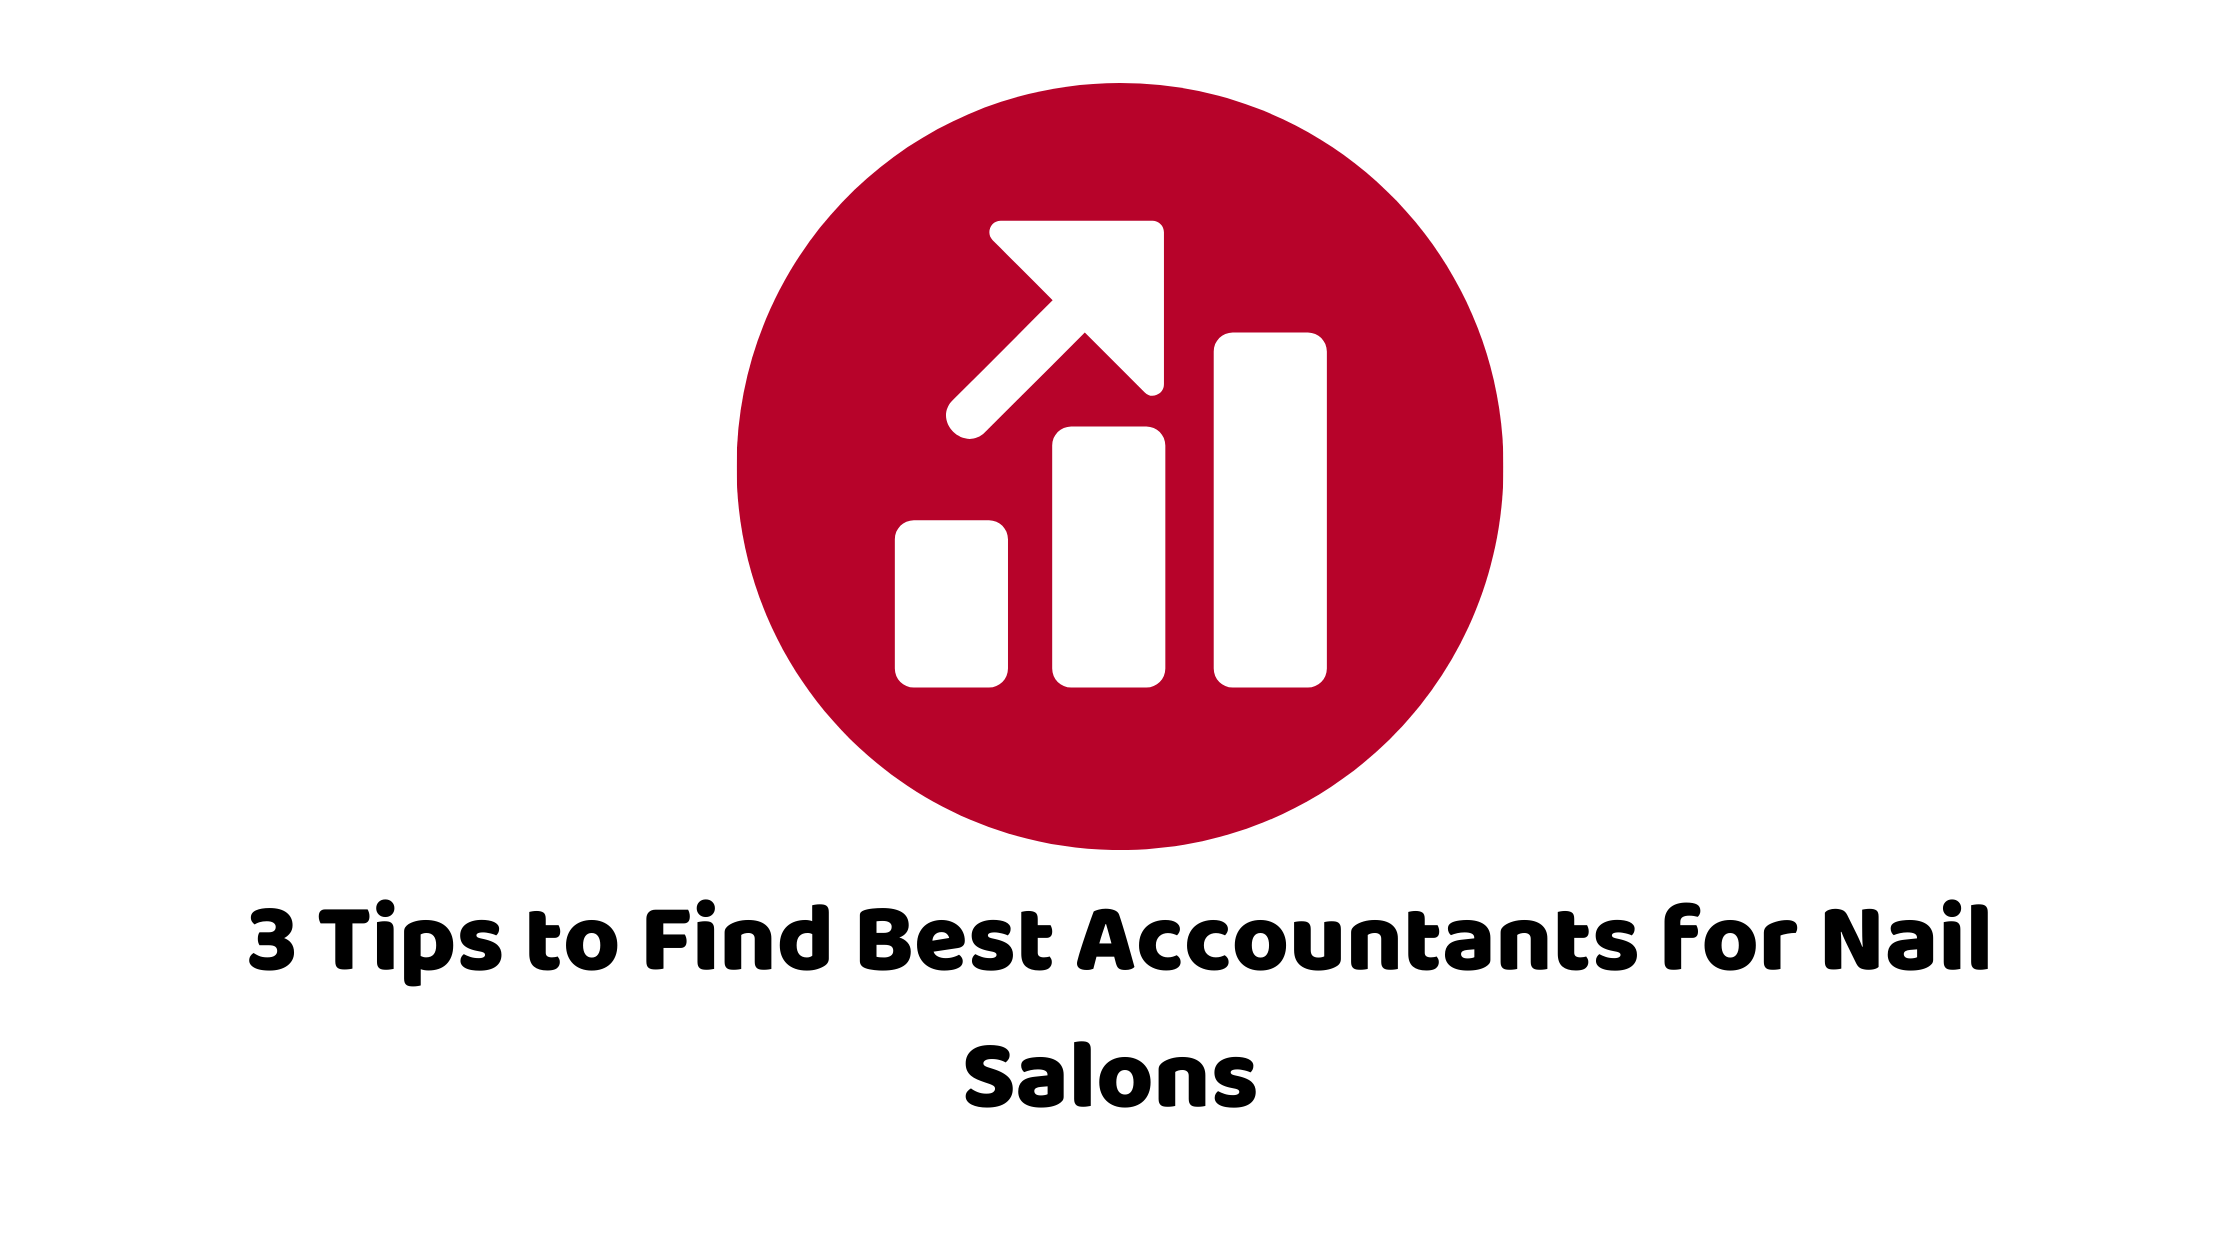 accountants for nail salons